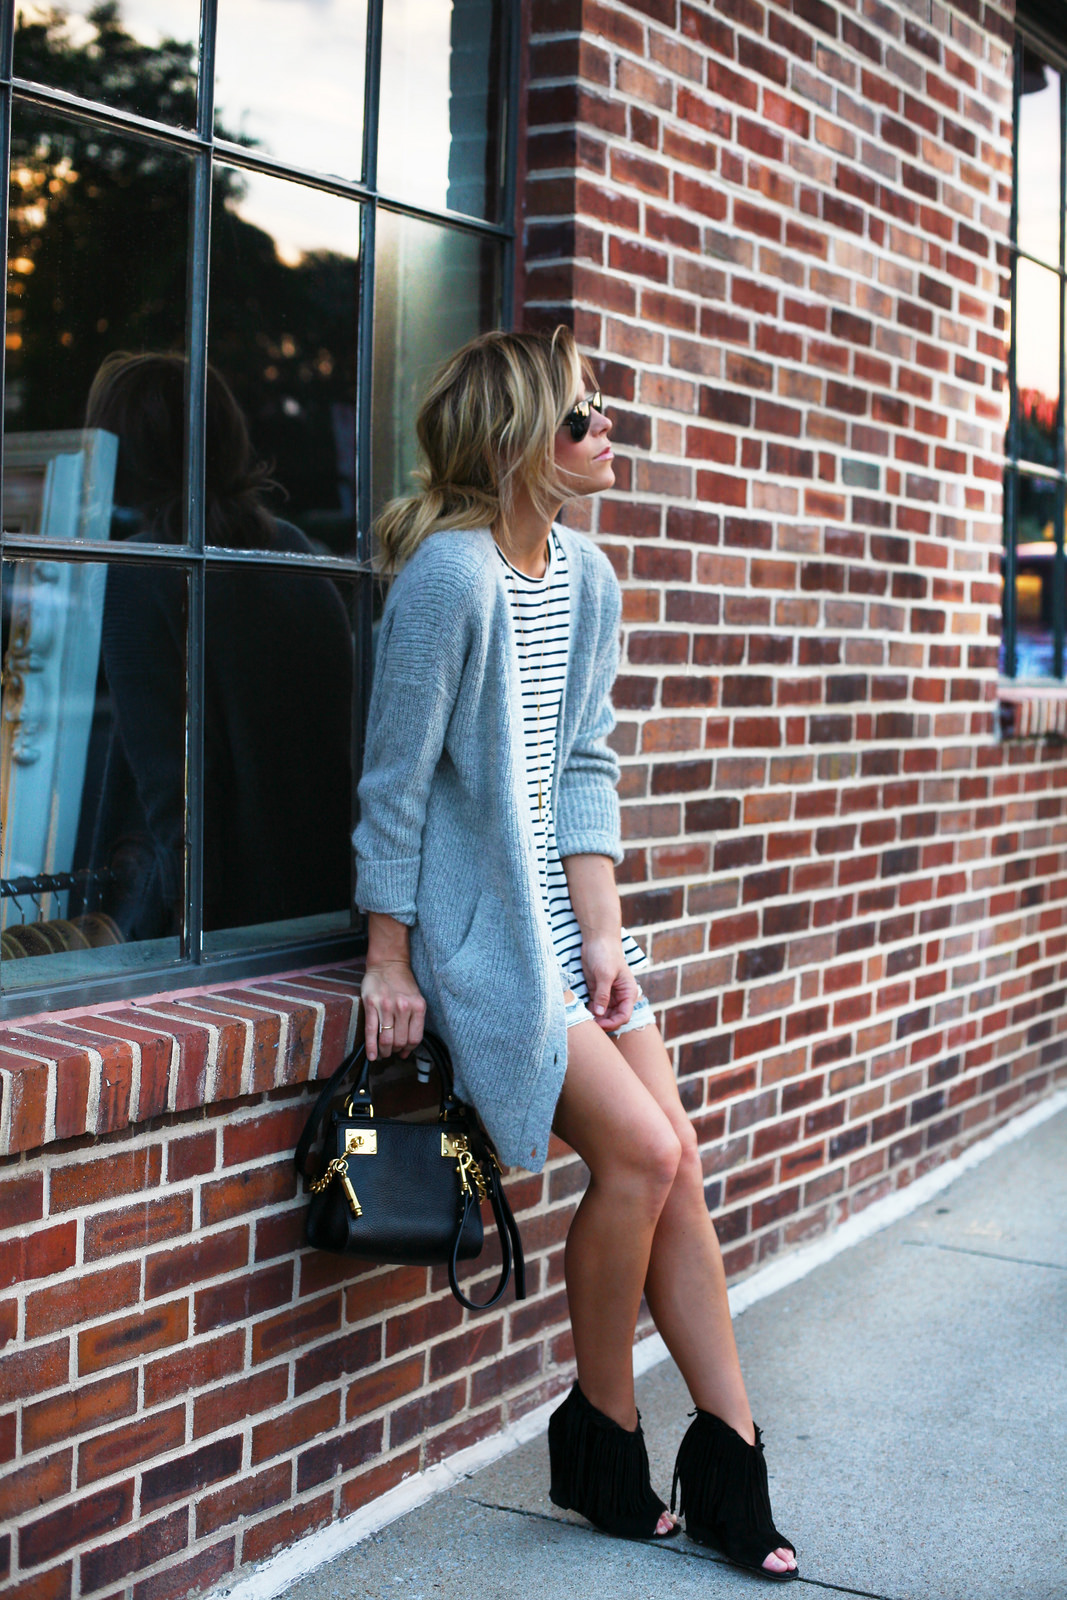 Mary Seng is wearing a grey cardigan from Free People, striped T-shirt and shorts from Necessary Clothing, shoes from Ash and the bag is from Sophie Hulme